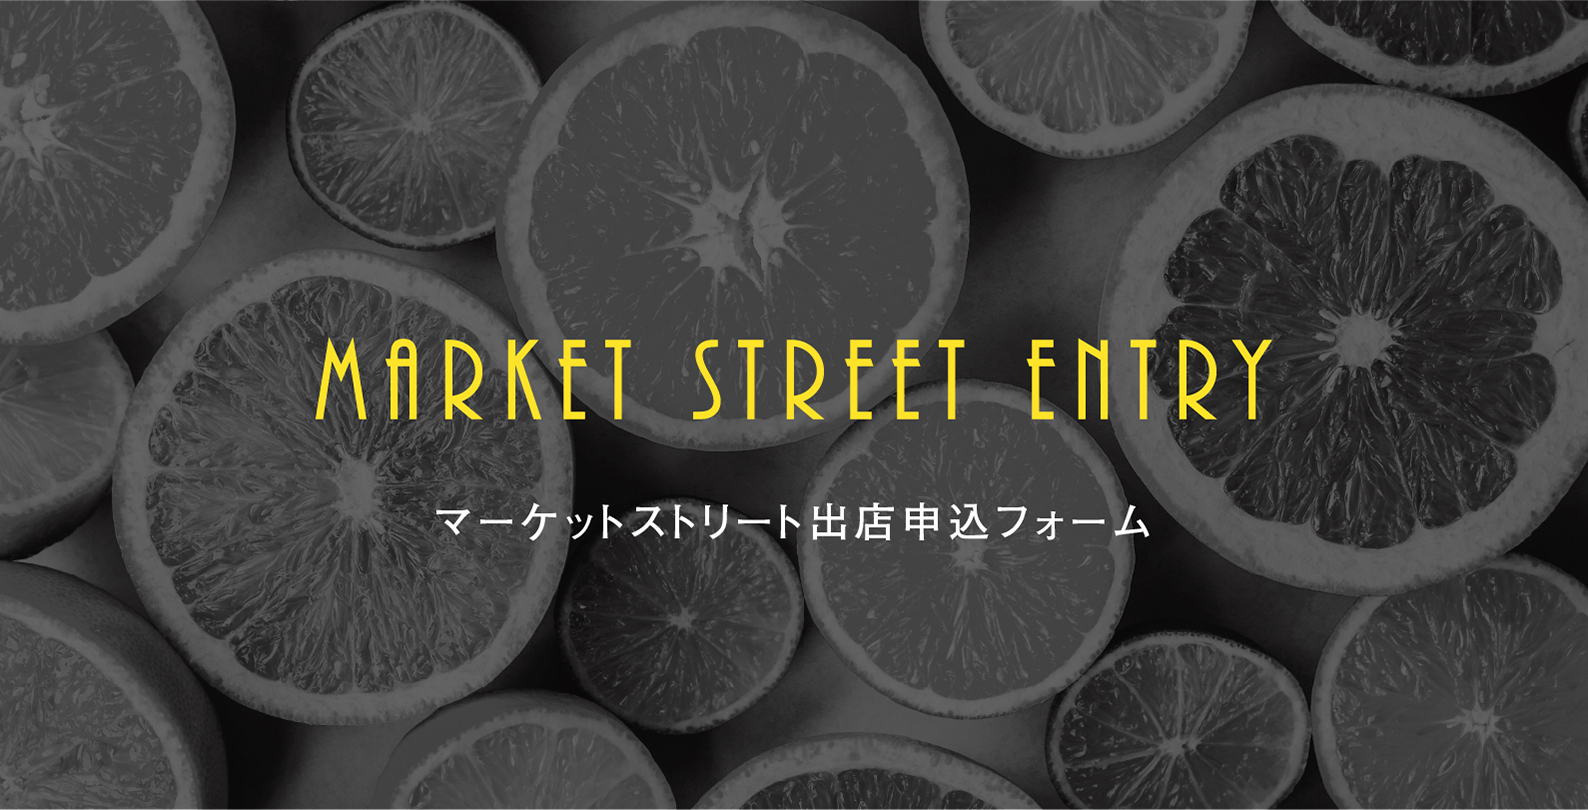 MARKET STREET RECRUITMENT